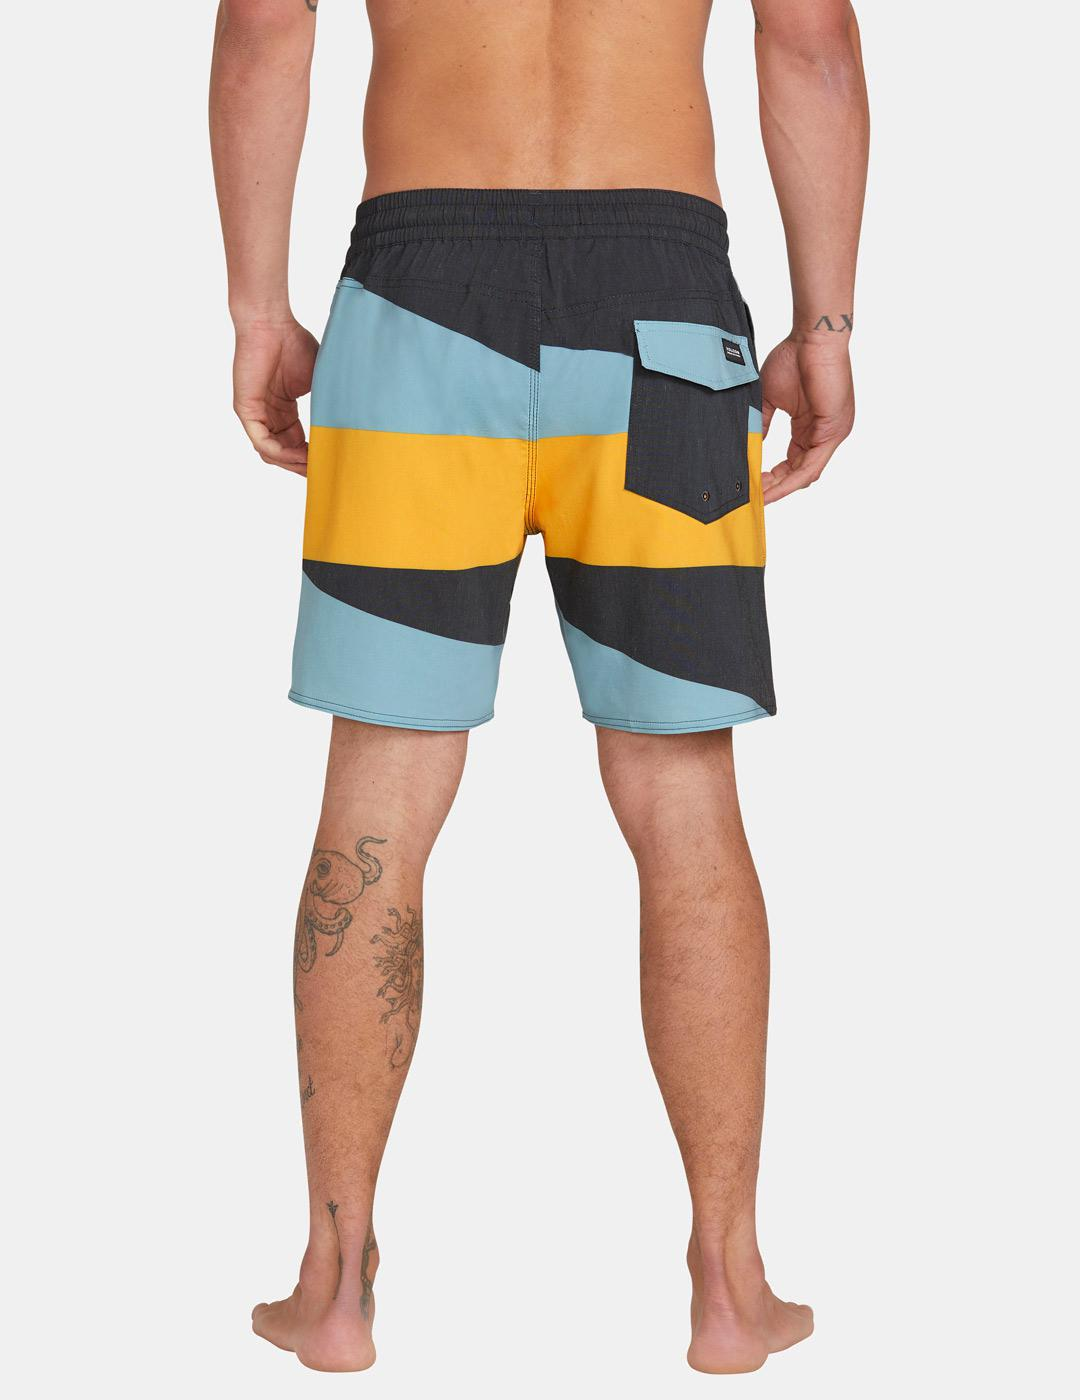 BAÑADOR VOLCOM KNOTICAL TRUNK 17' BOARDSHORT BLK BLACK